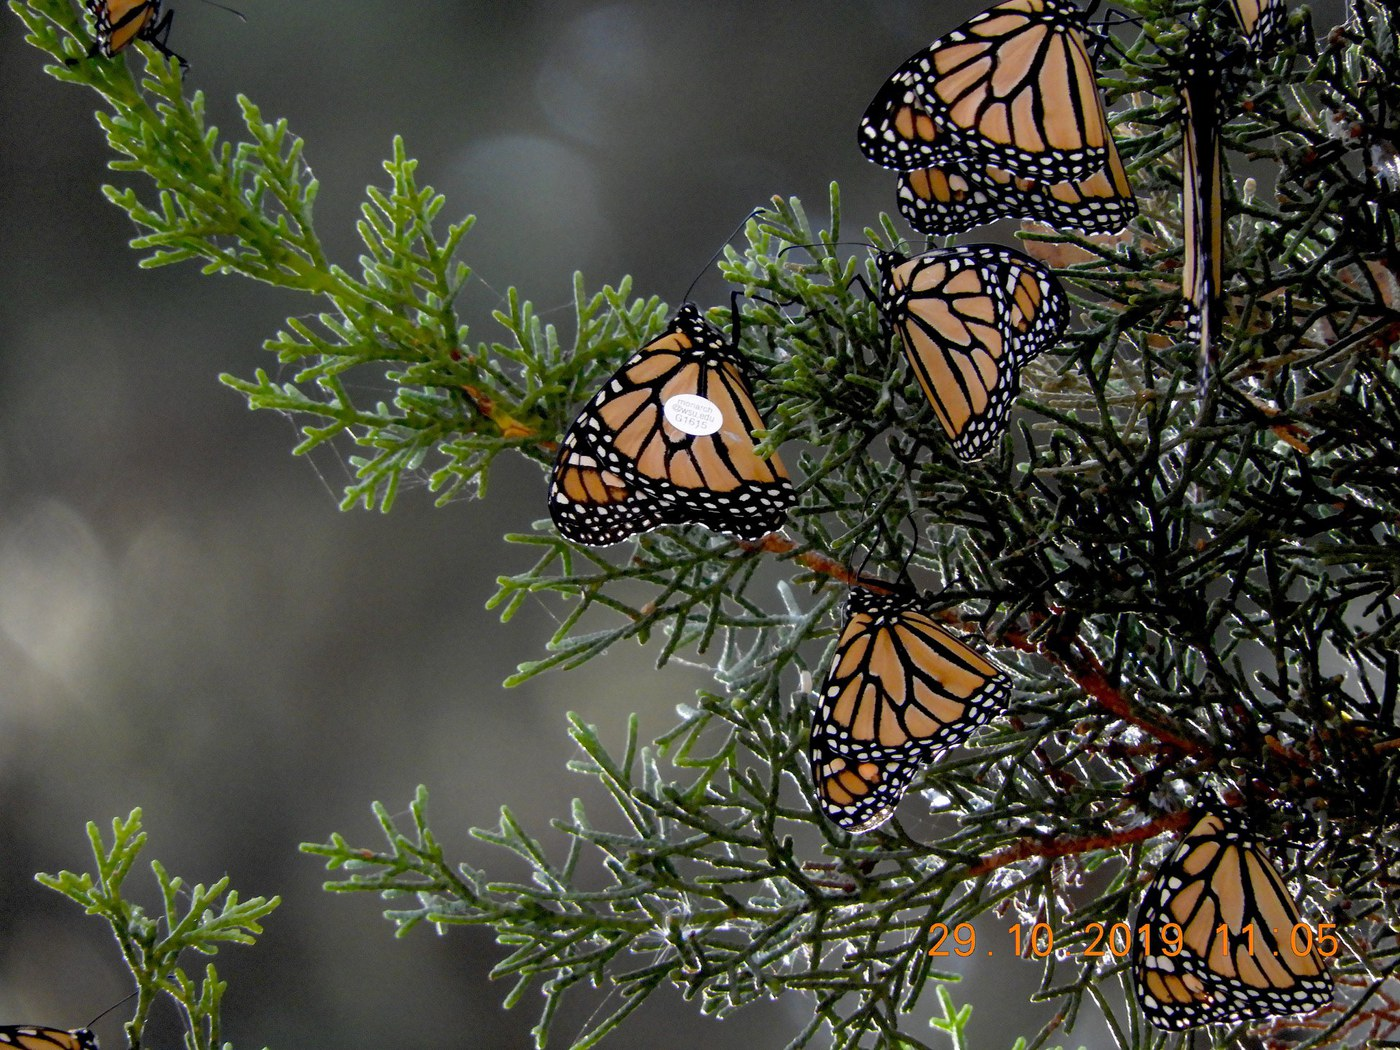 Monarch G1615, better known as 'Flamingo,' was spotted at overwintering grounds in Santa Cruz, California. Photo: John Dayton.